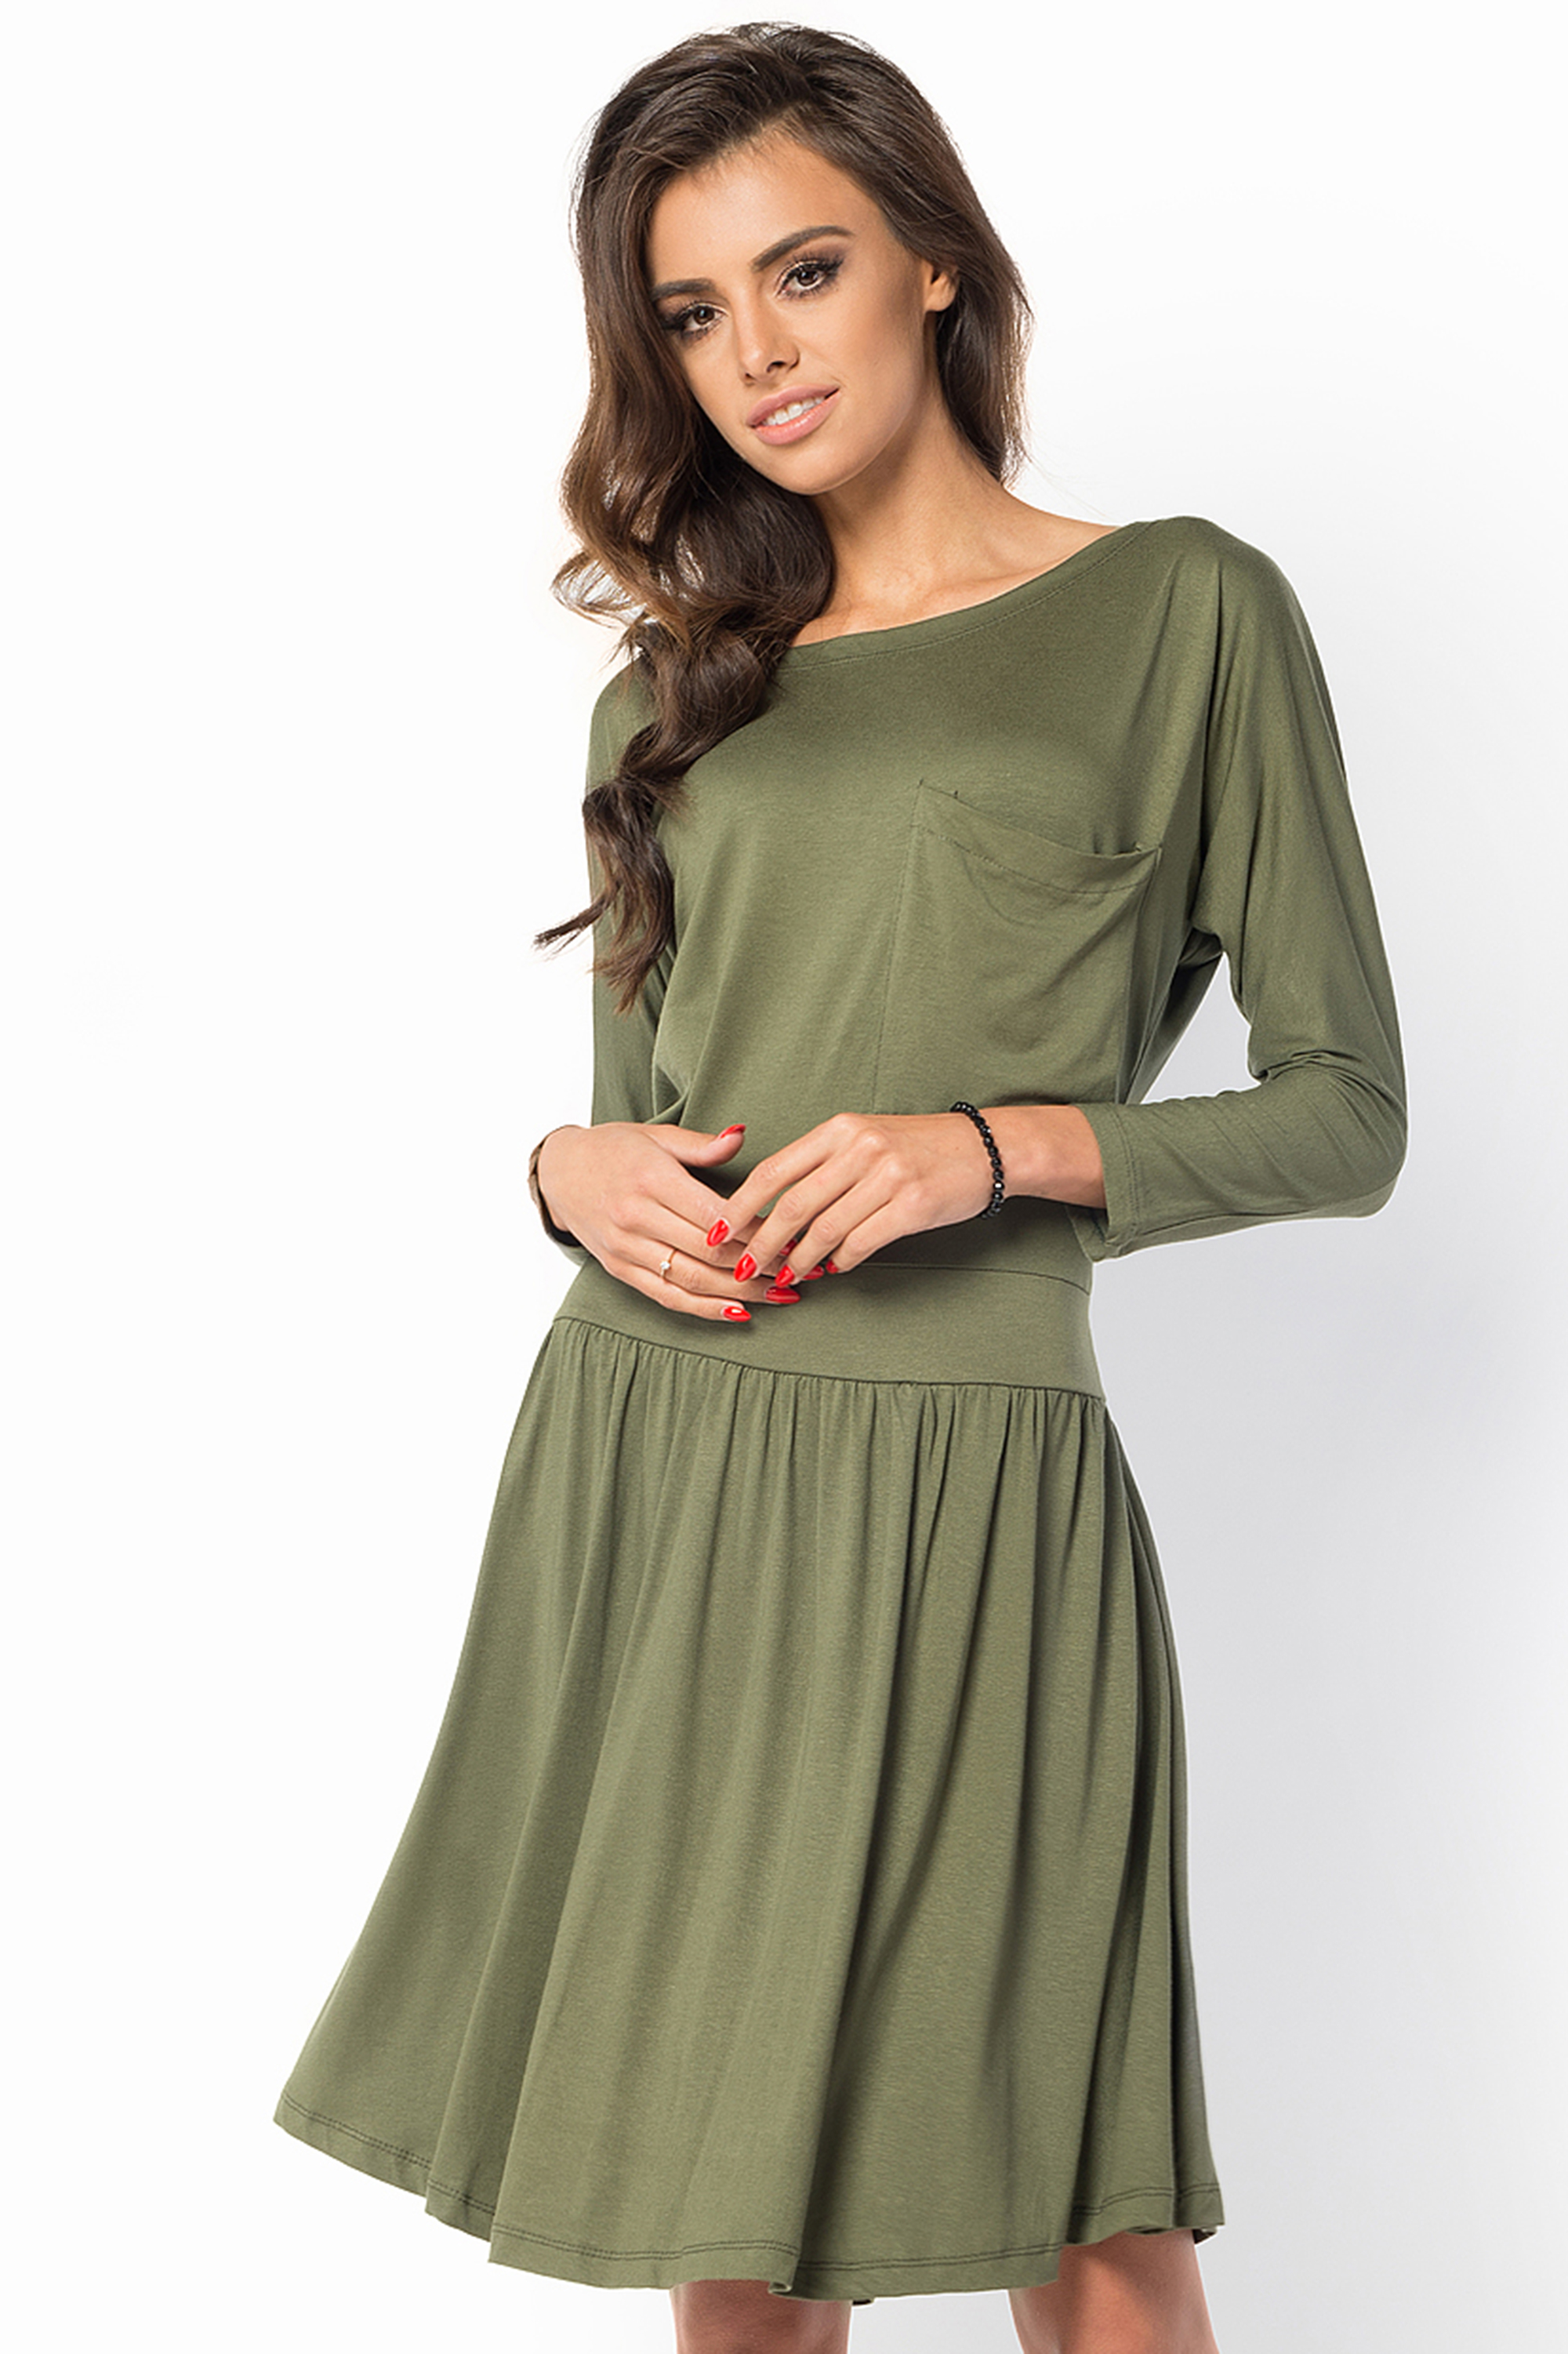 Ladies A-line Girly Casual Long Sleeve Knee Length Boat Neck Skater Dress FM43